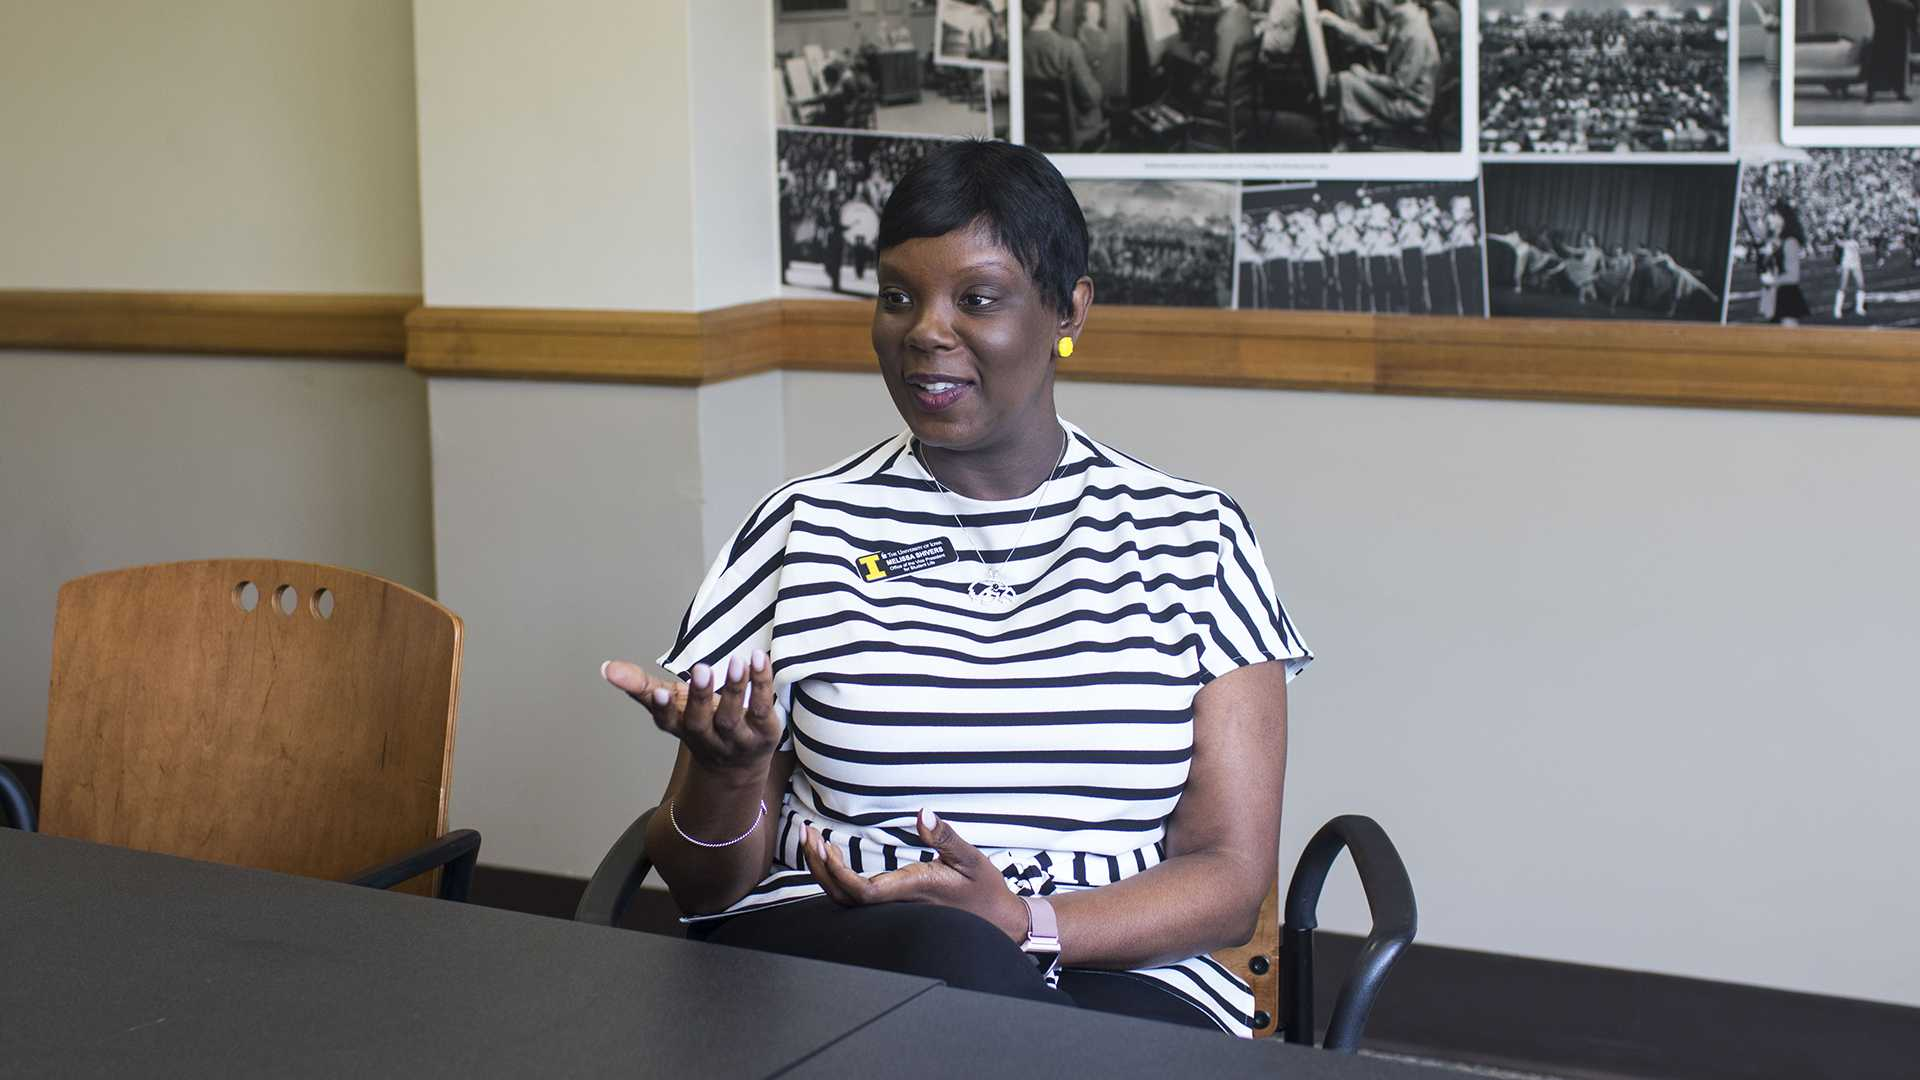 VP for Student Life Melissa Shivers speaks in an interview with The Daily Iowan in the IMU on Friday, May 4, 2018. (Lily Smith/The Daily Iowan)